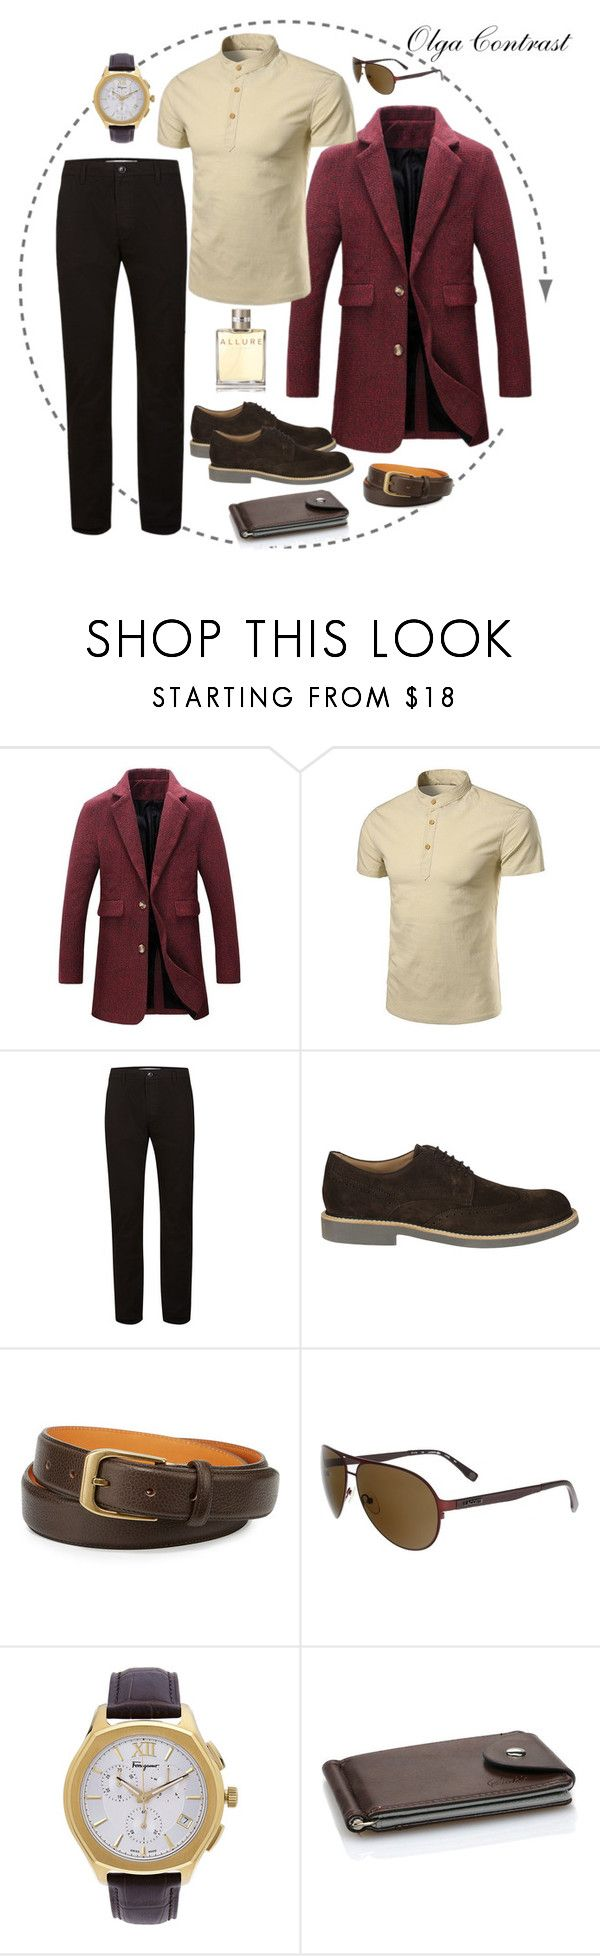 """12.05.2017"" by olgacontrast on Polyvore featuring Topman, Tod's, The British Belt Company, Lacoste, Salvatore Ferragamo, Chanel, men's fashion и menswear"